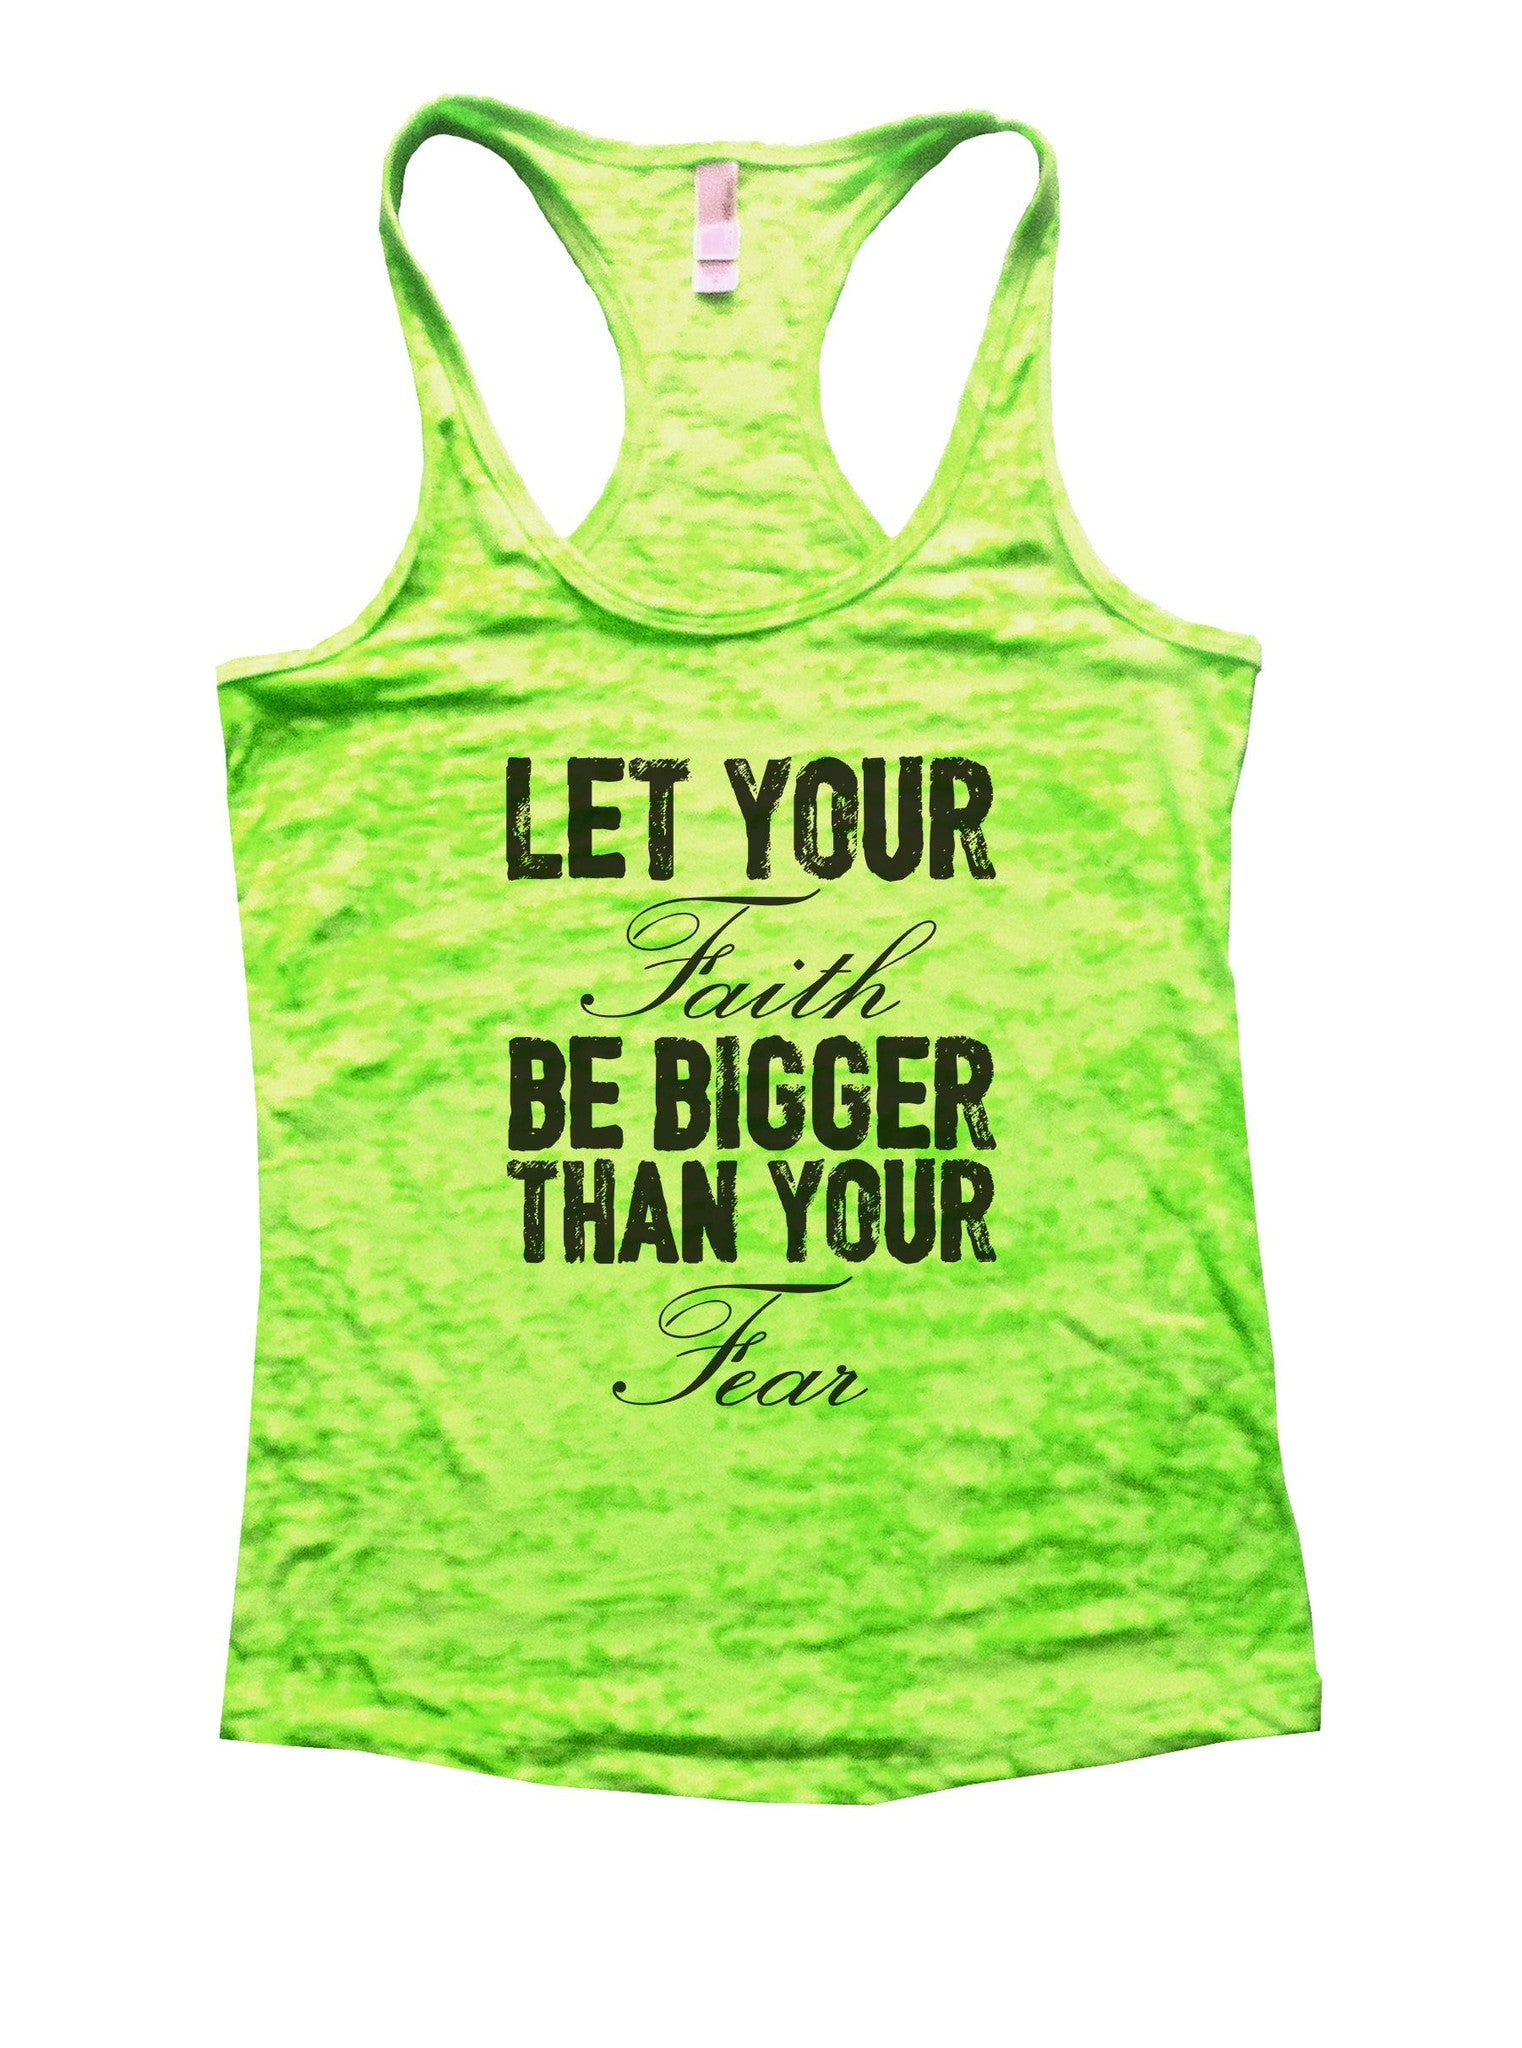 Let Your Faith Be Bigger Than Your Fear Burnout Tank Top By BurnoutTankTops.com - 861 - Funny Shirts Tank Tops Burnouts and Triblends  - 2